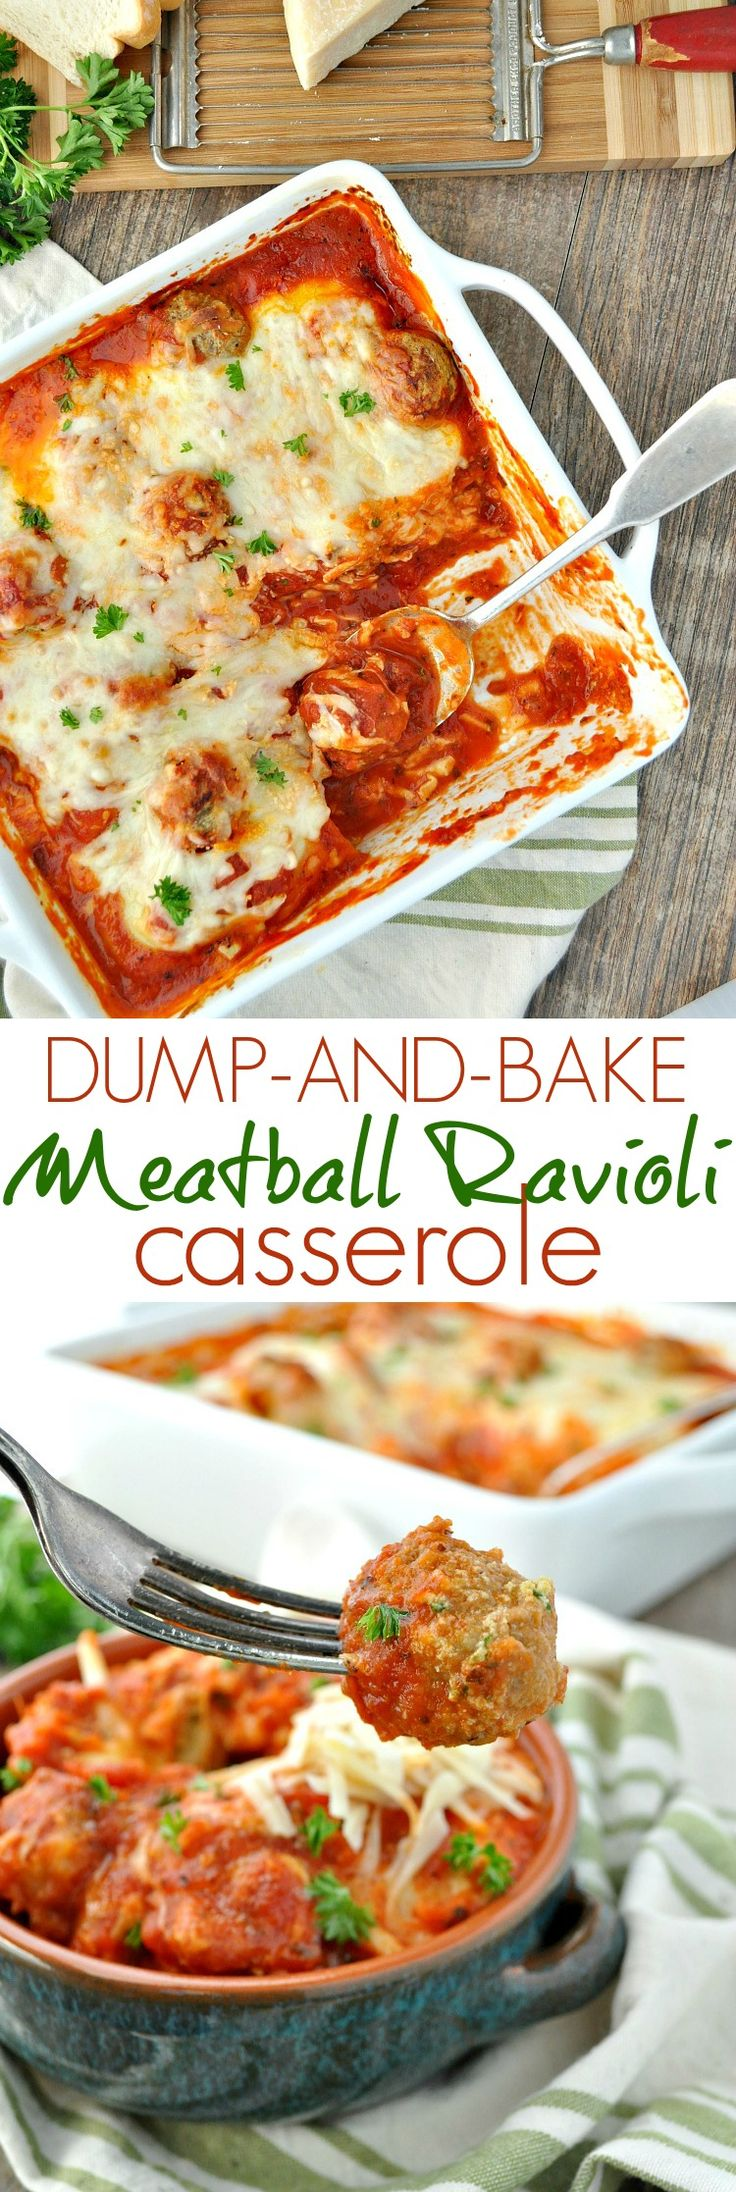 There's no need to boil the pasta or cook the meat for this easy 5-ingredient Dump-and-Bake Meatball Ravioli Casserole!